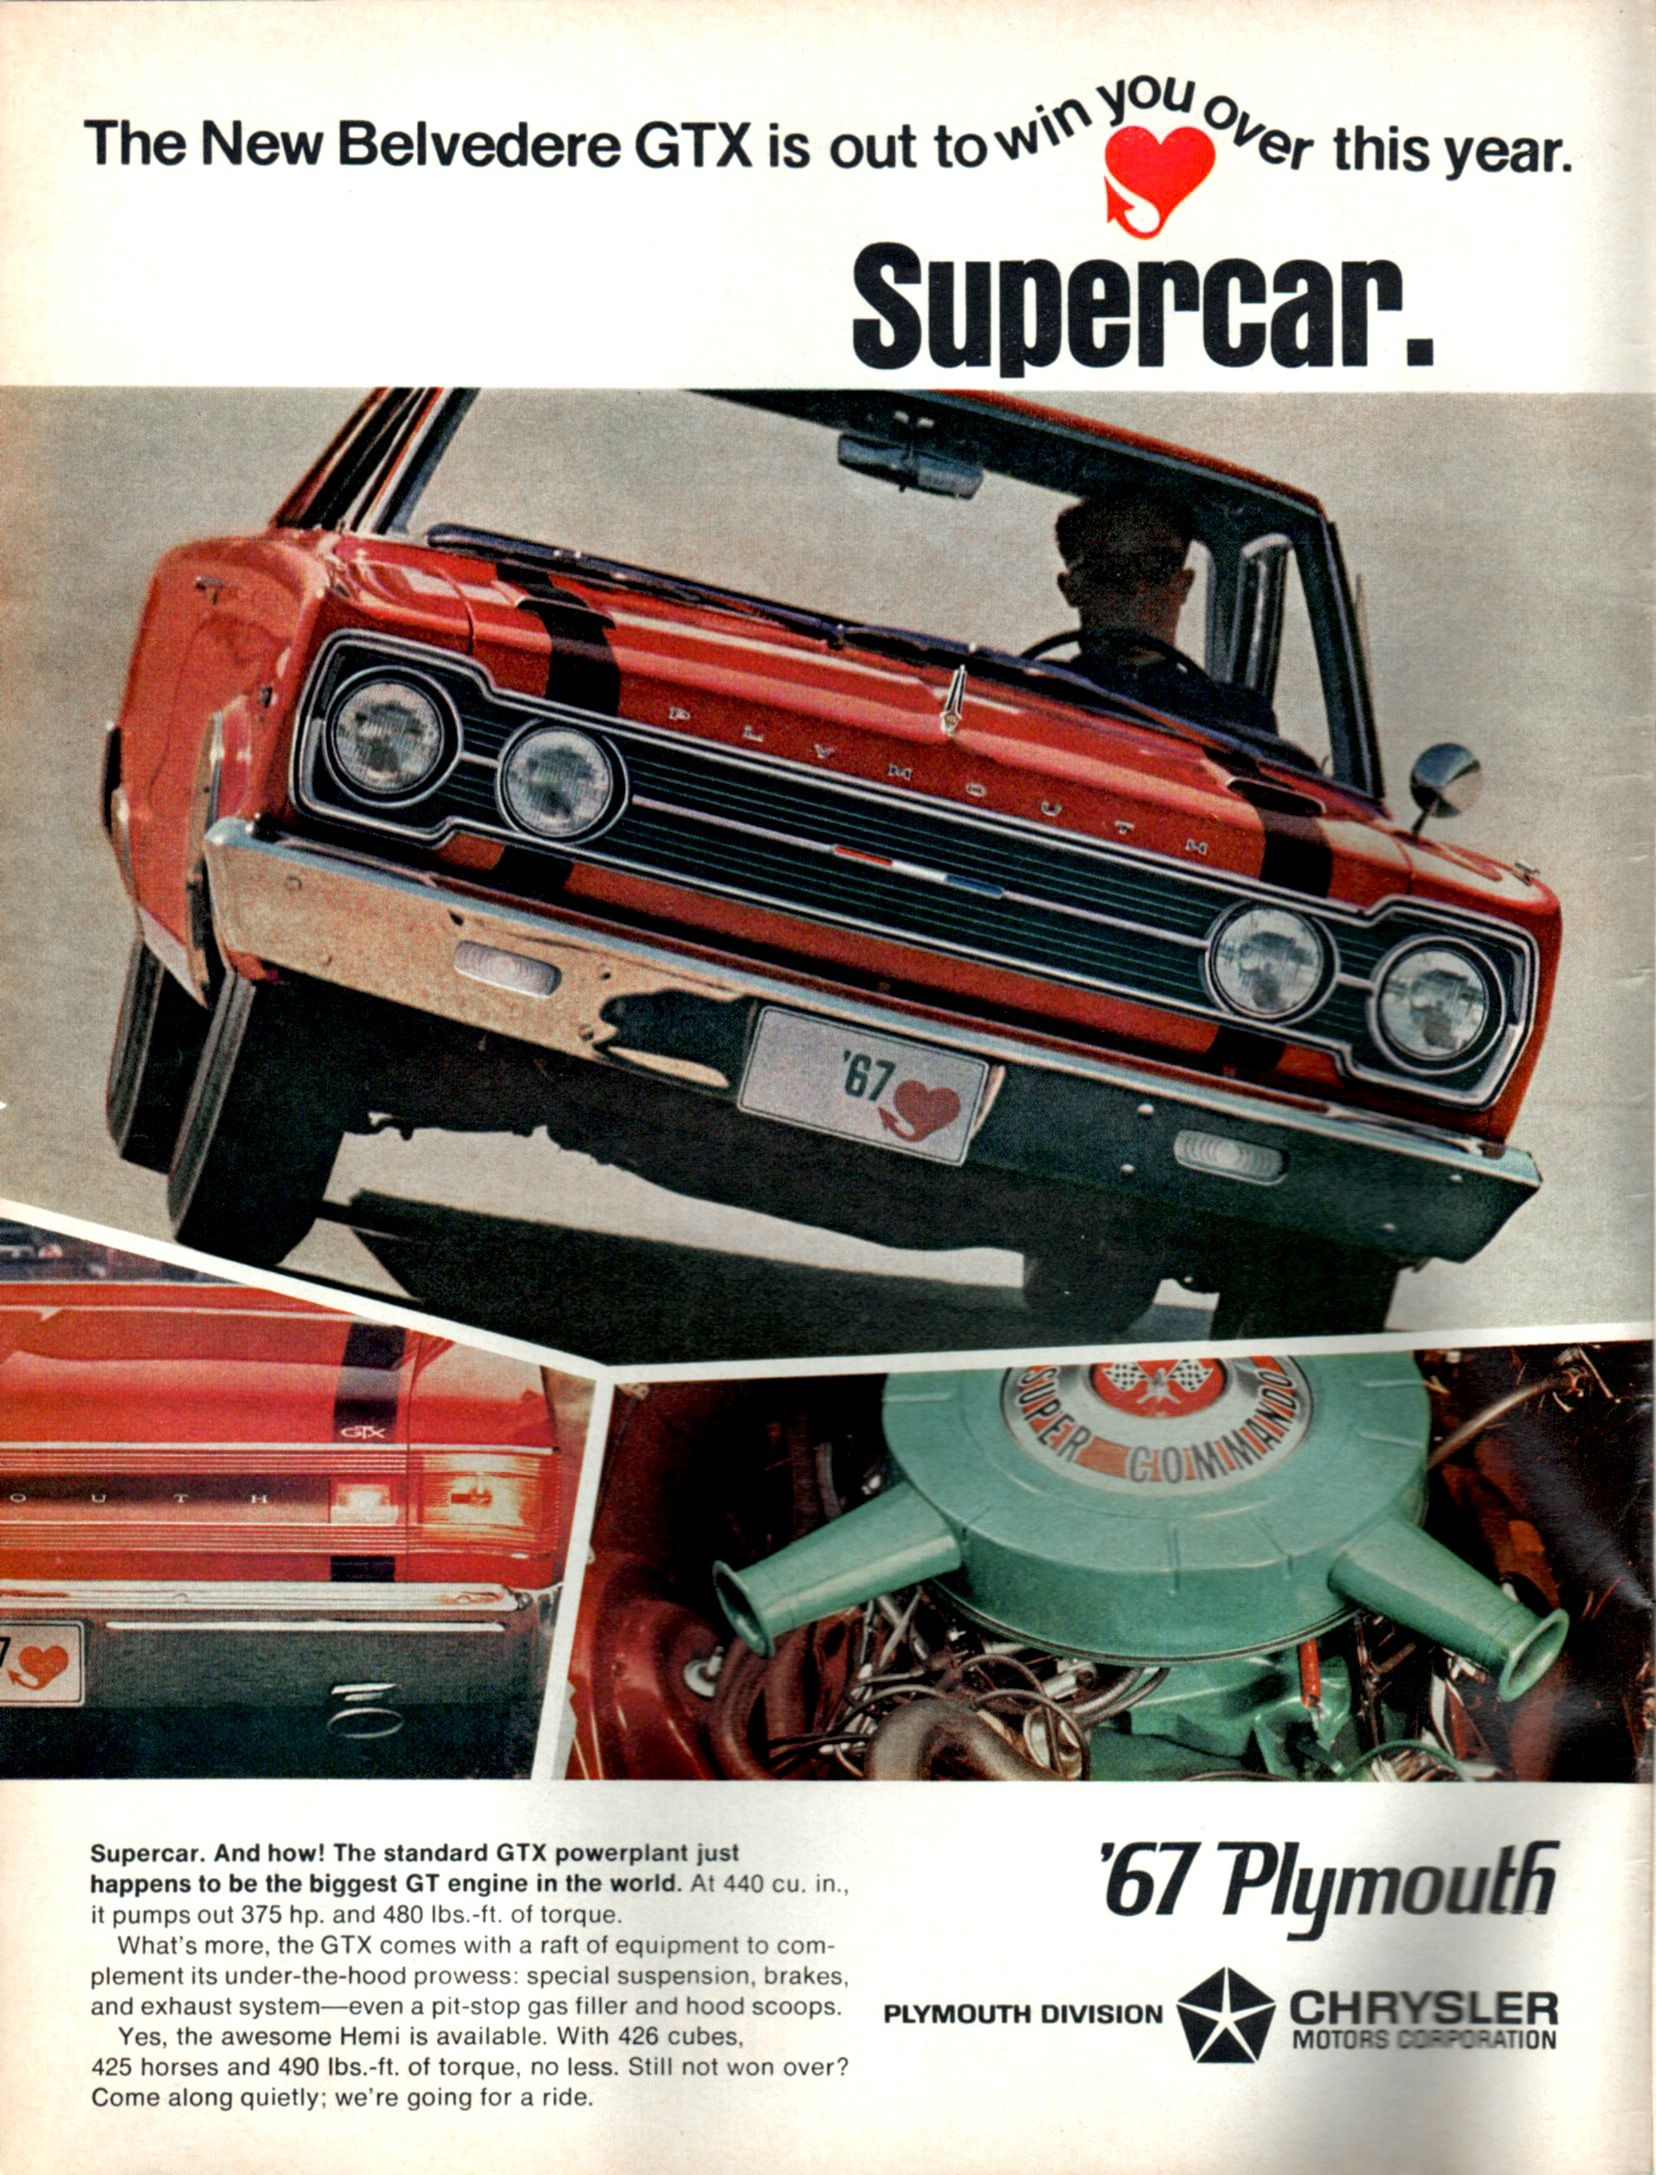 1967 Plymouth Belvedere GTX advertisement